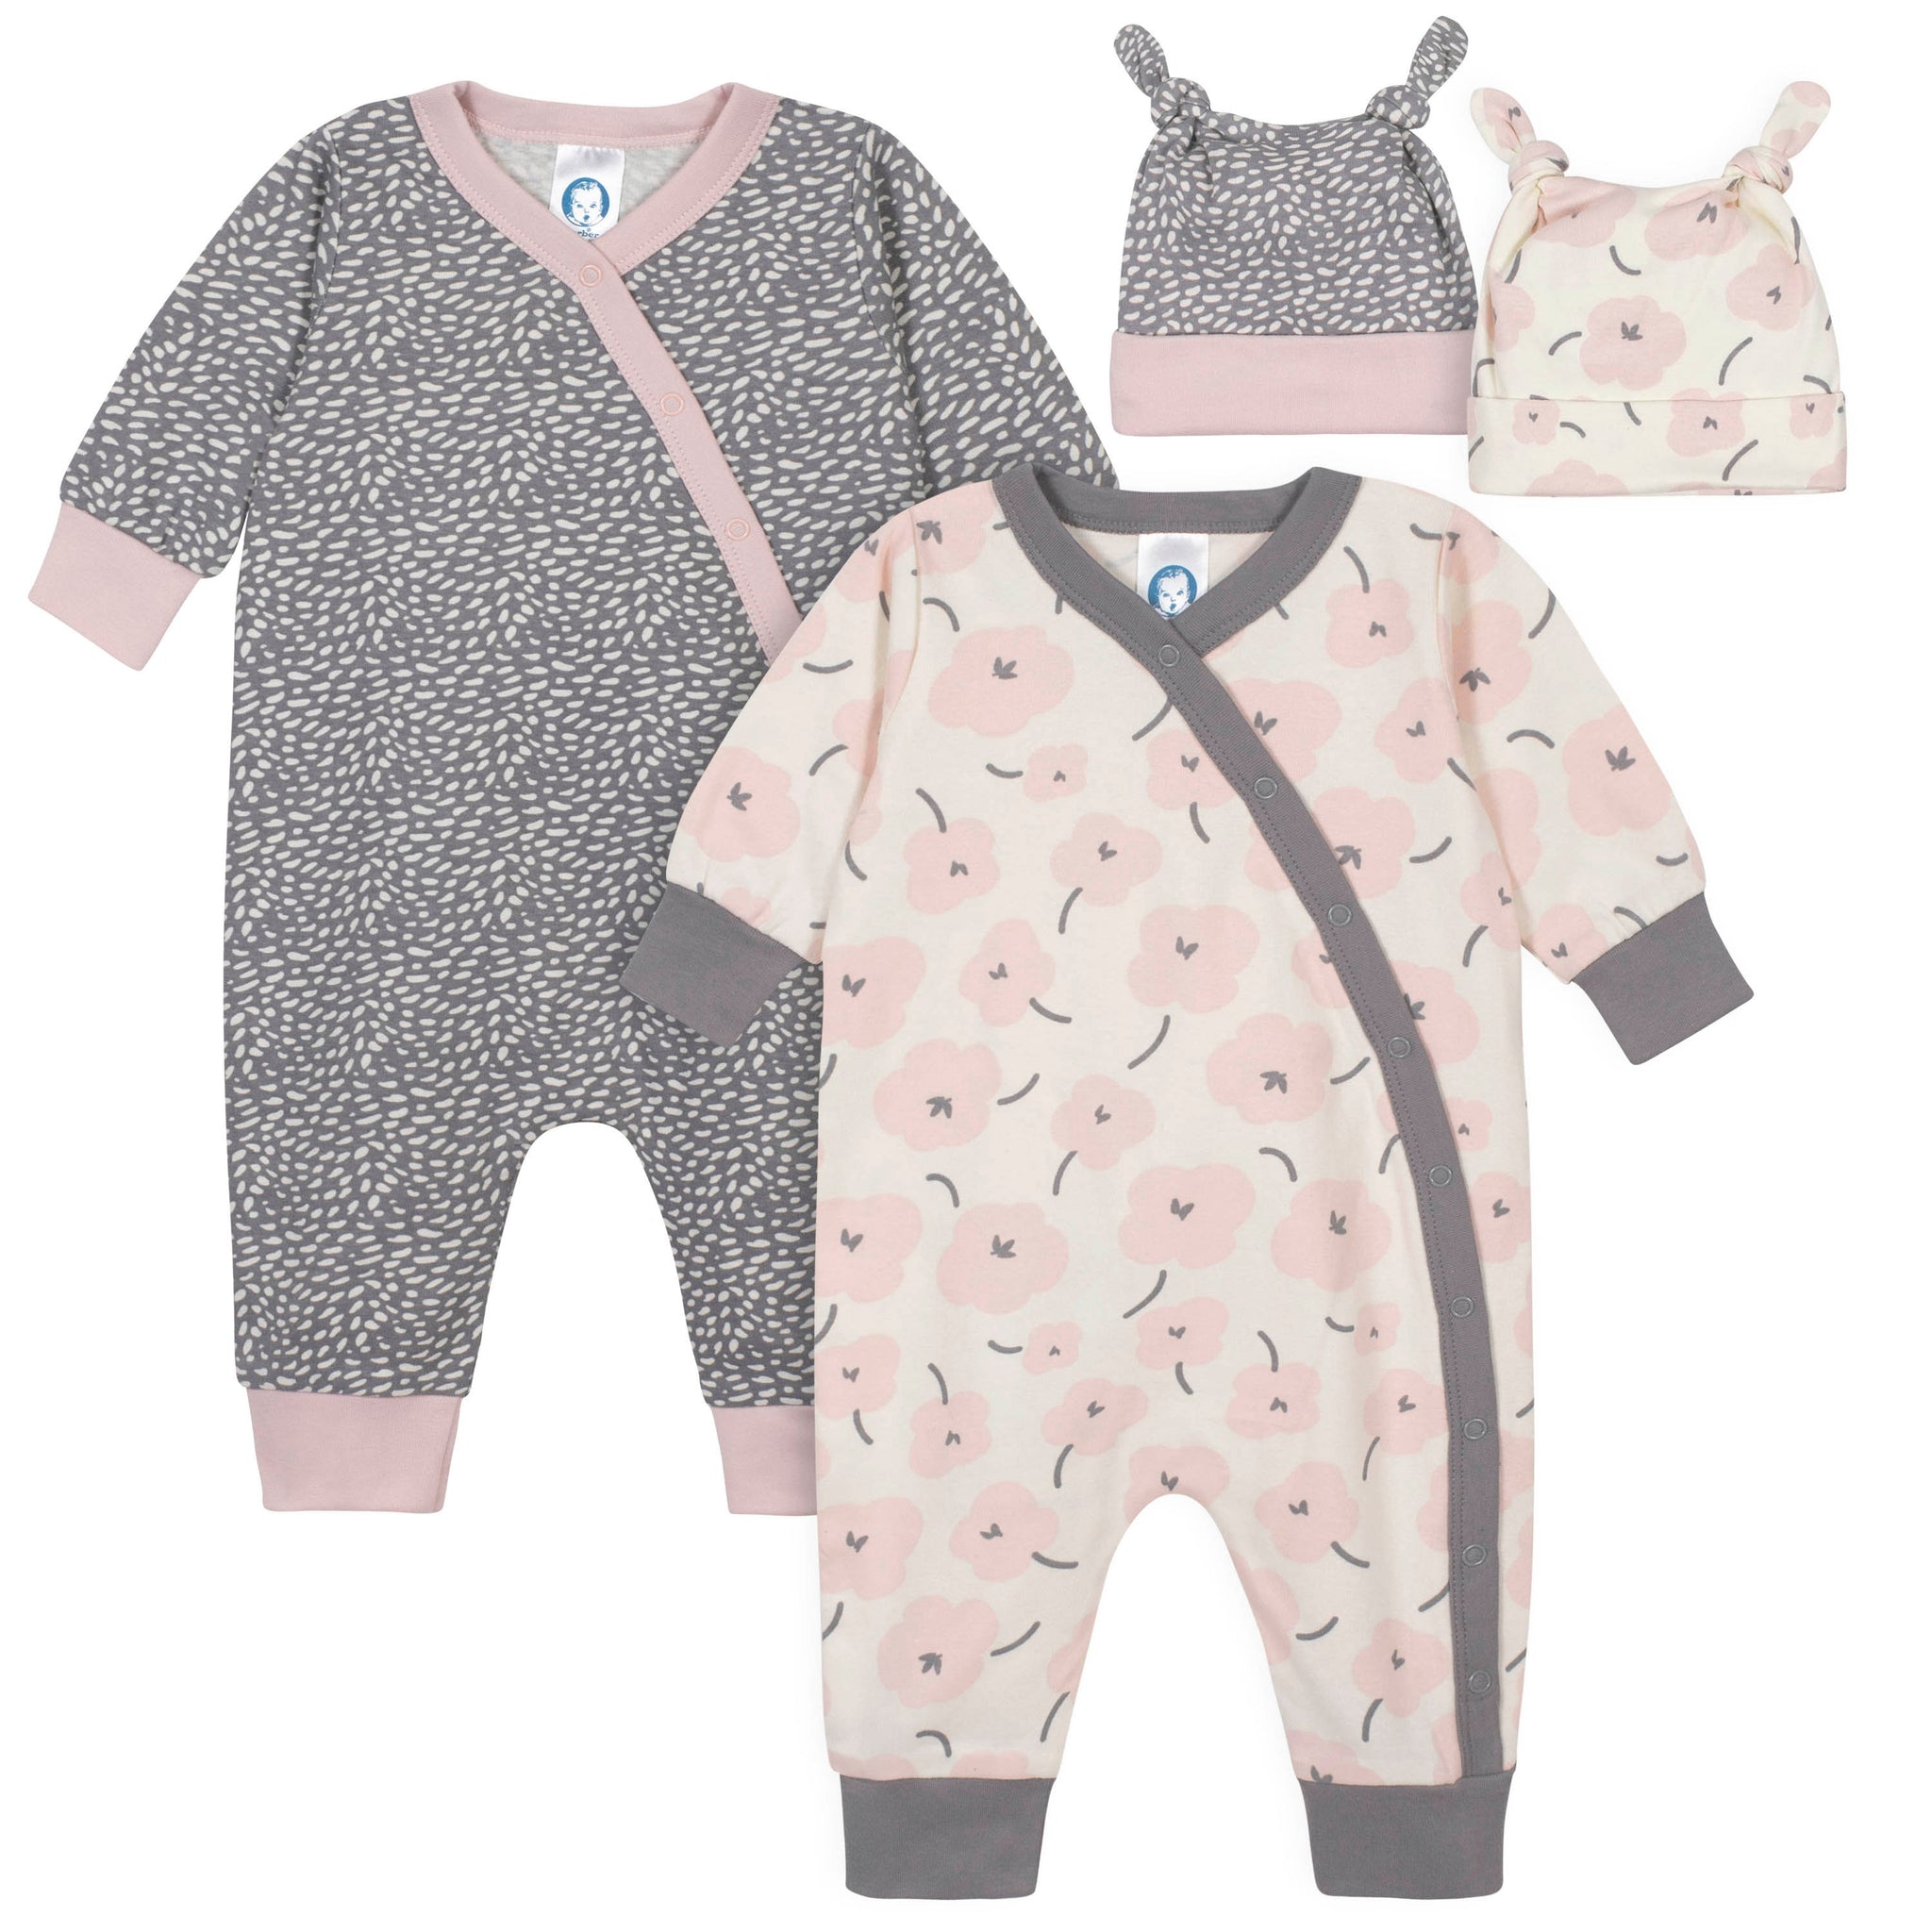 4-Piece Baby Girls Bunny Coverall and Cap Set-Gerber Childrenswear Wholesale